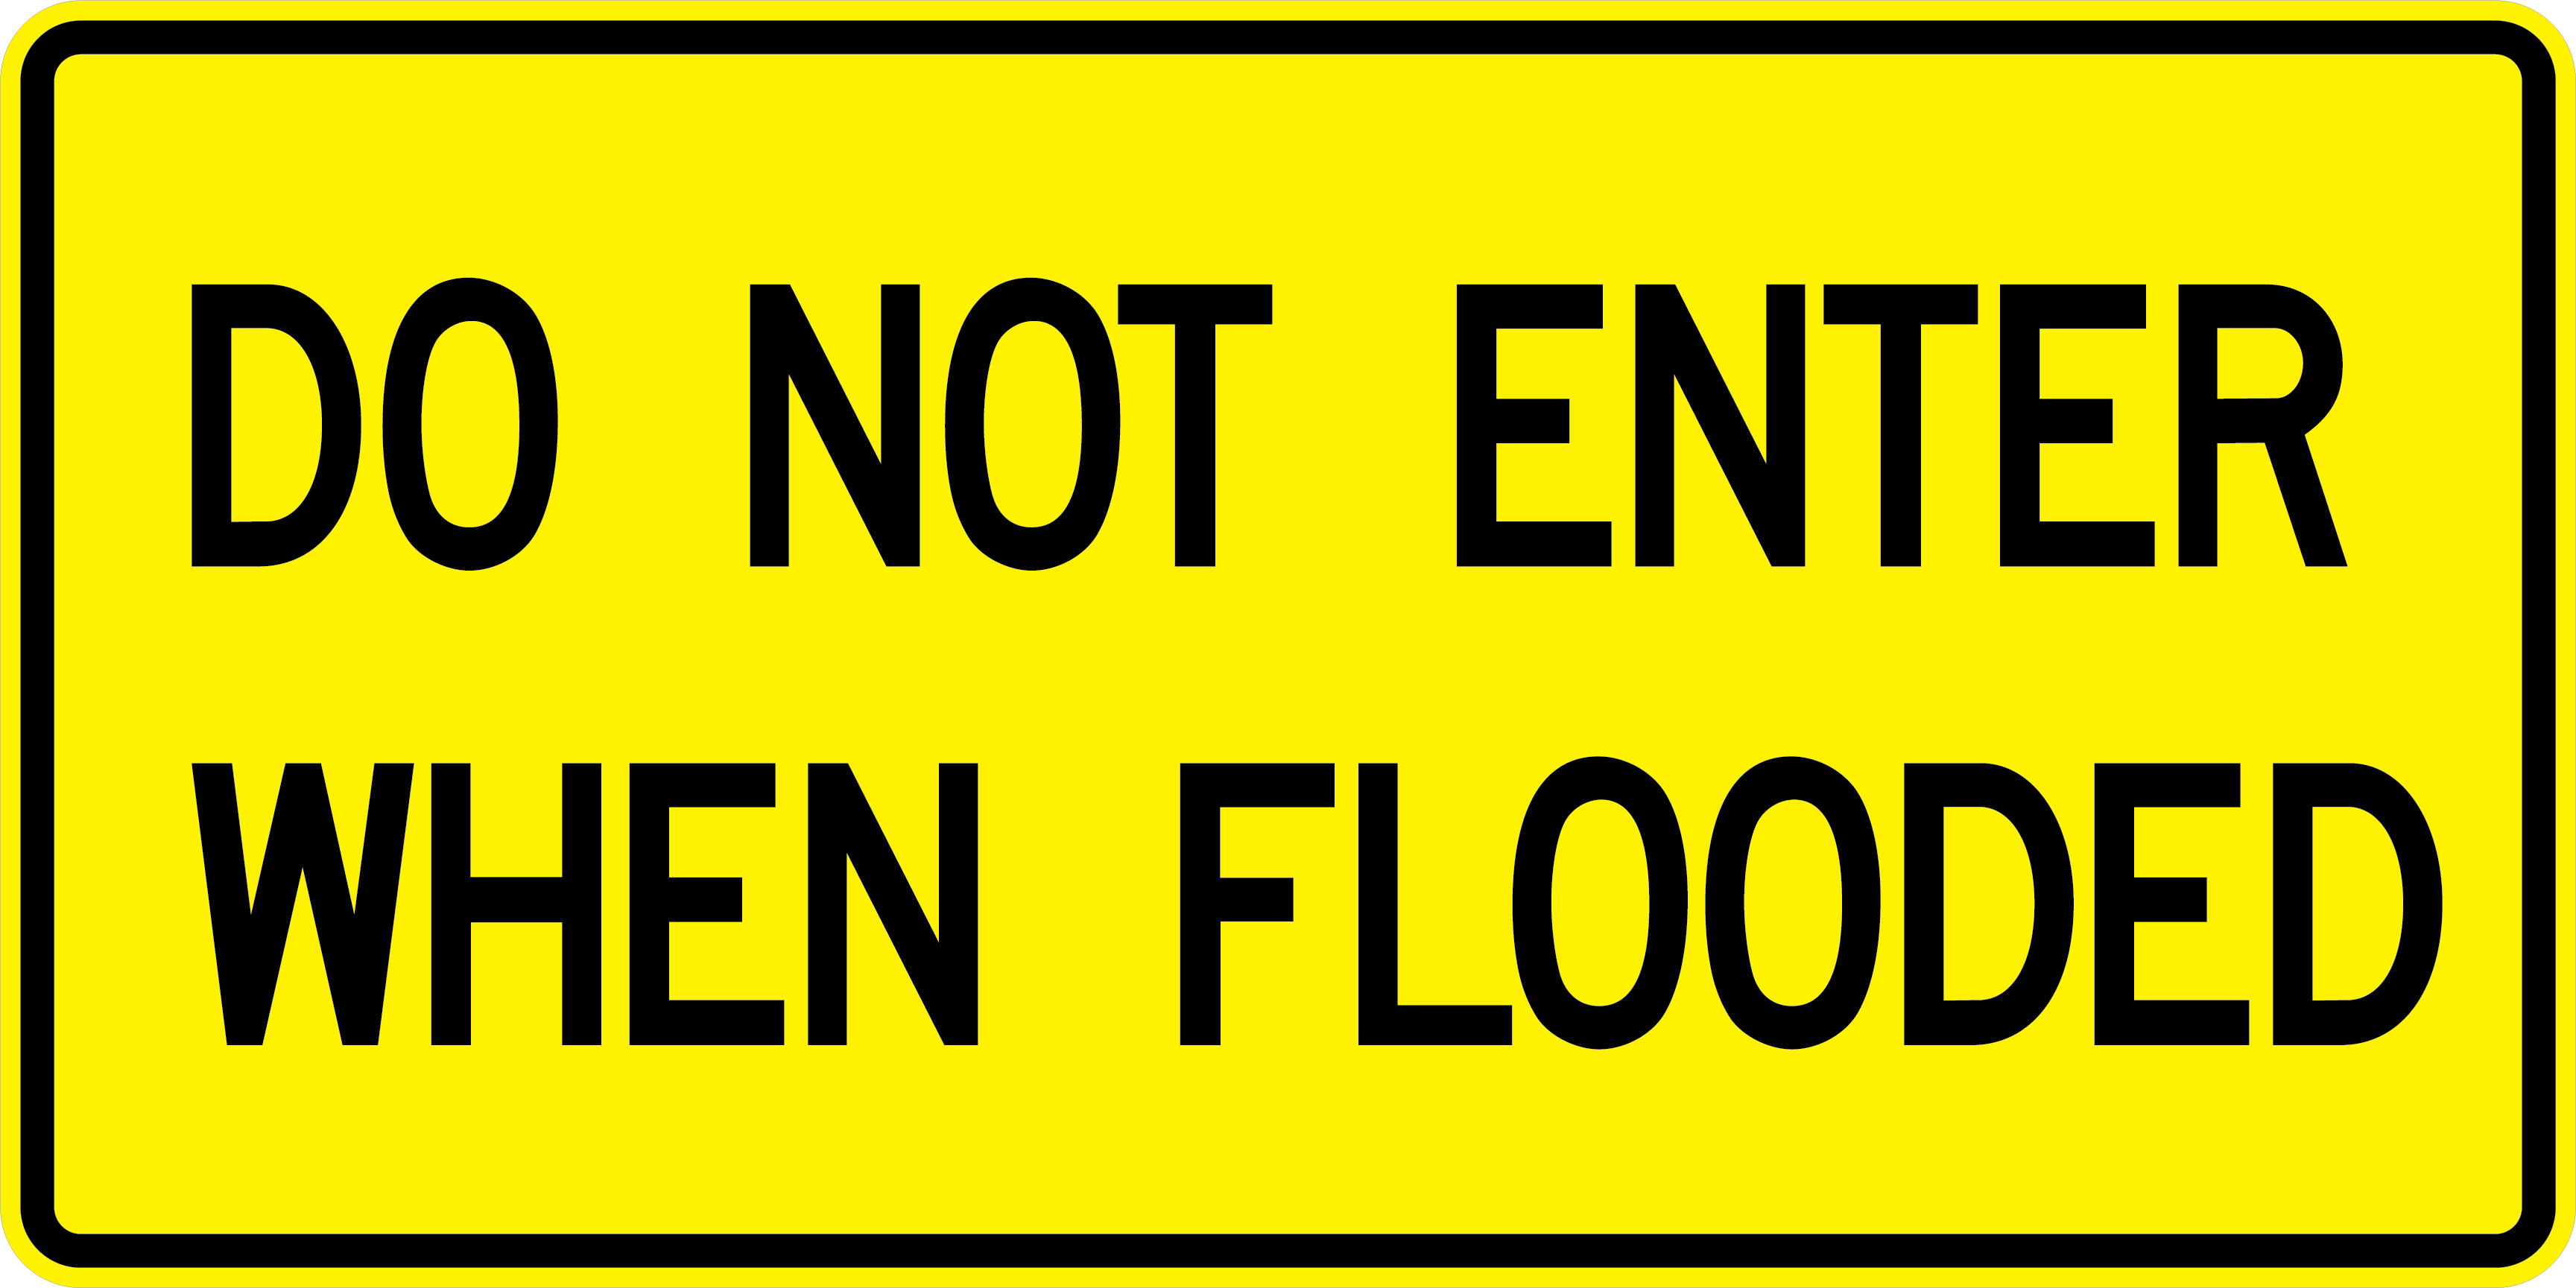 W8-103 DO NOT ENTER WHEN FLOODED